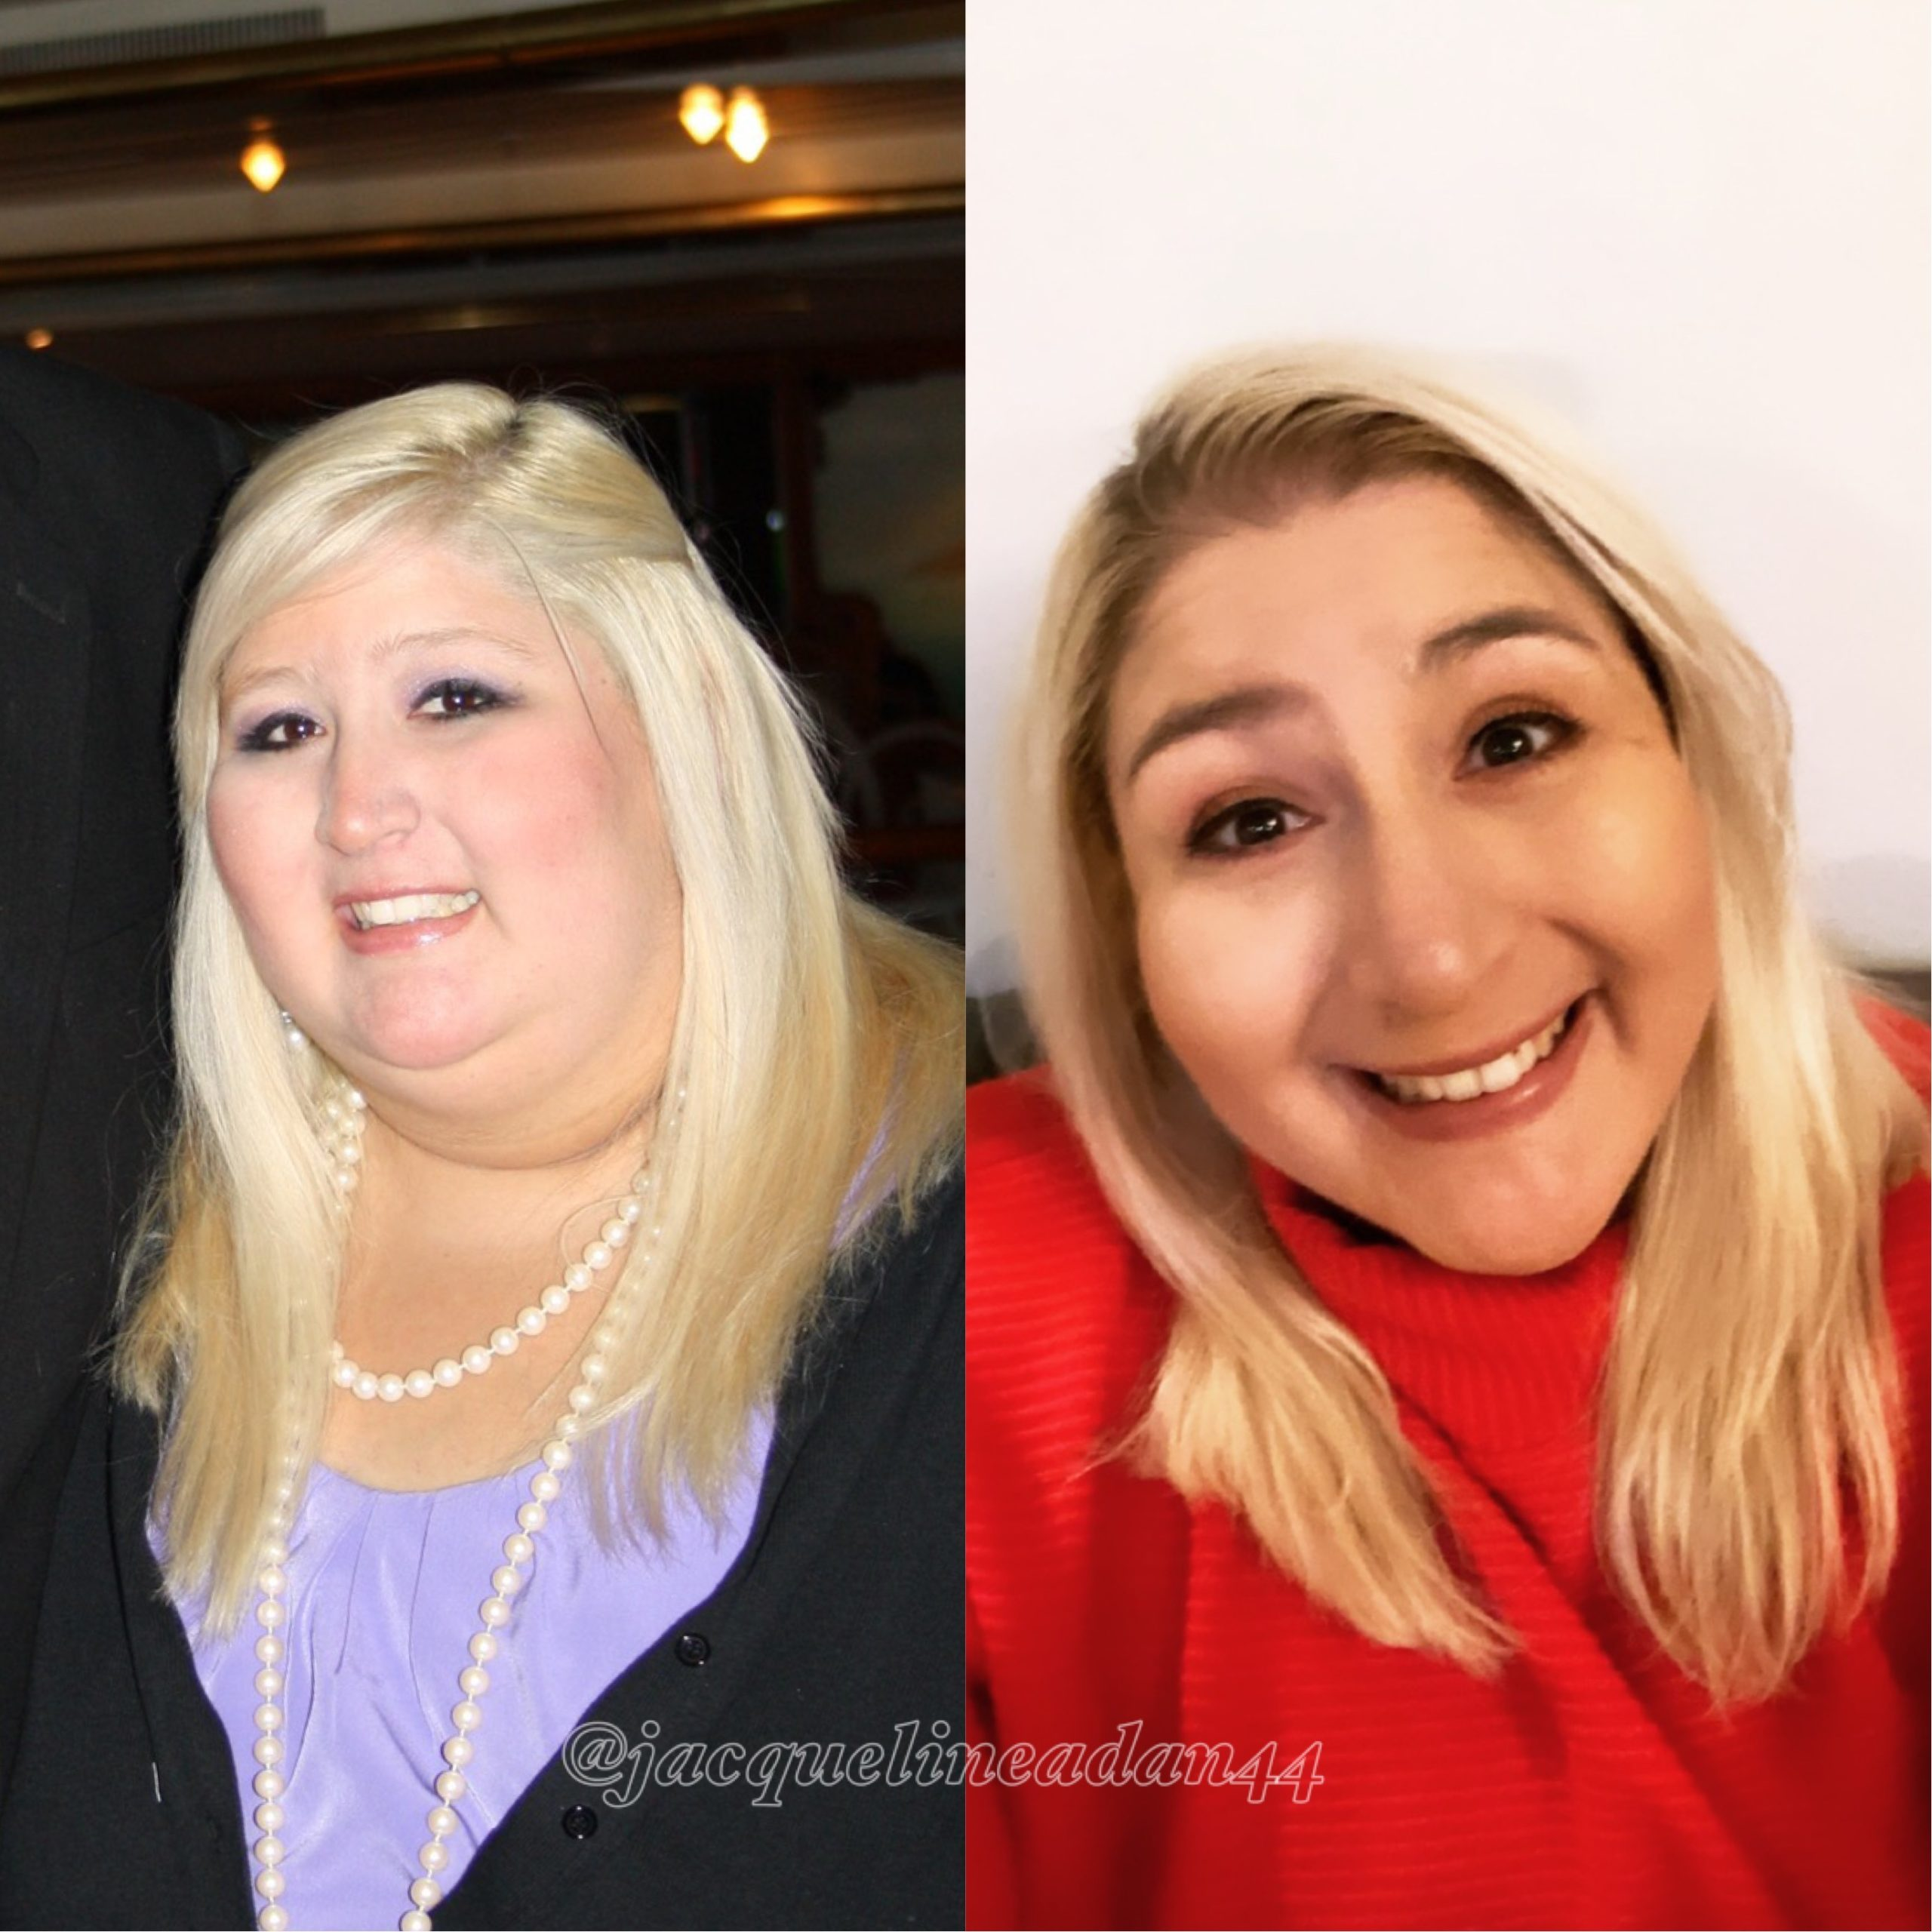 Jacqueline Adan Before and after 300+ pounds weight loss